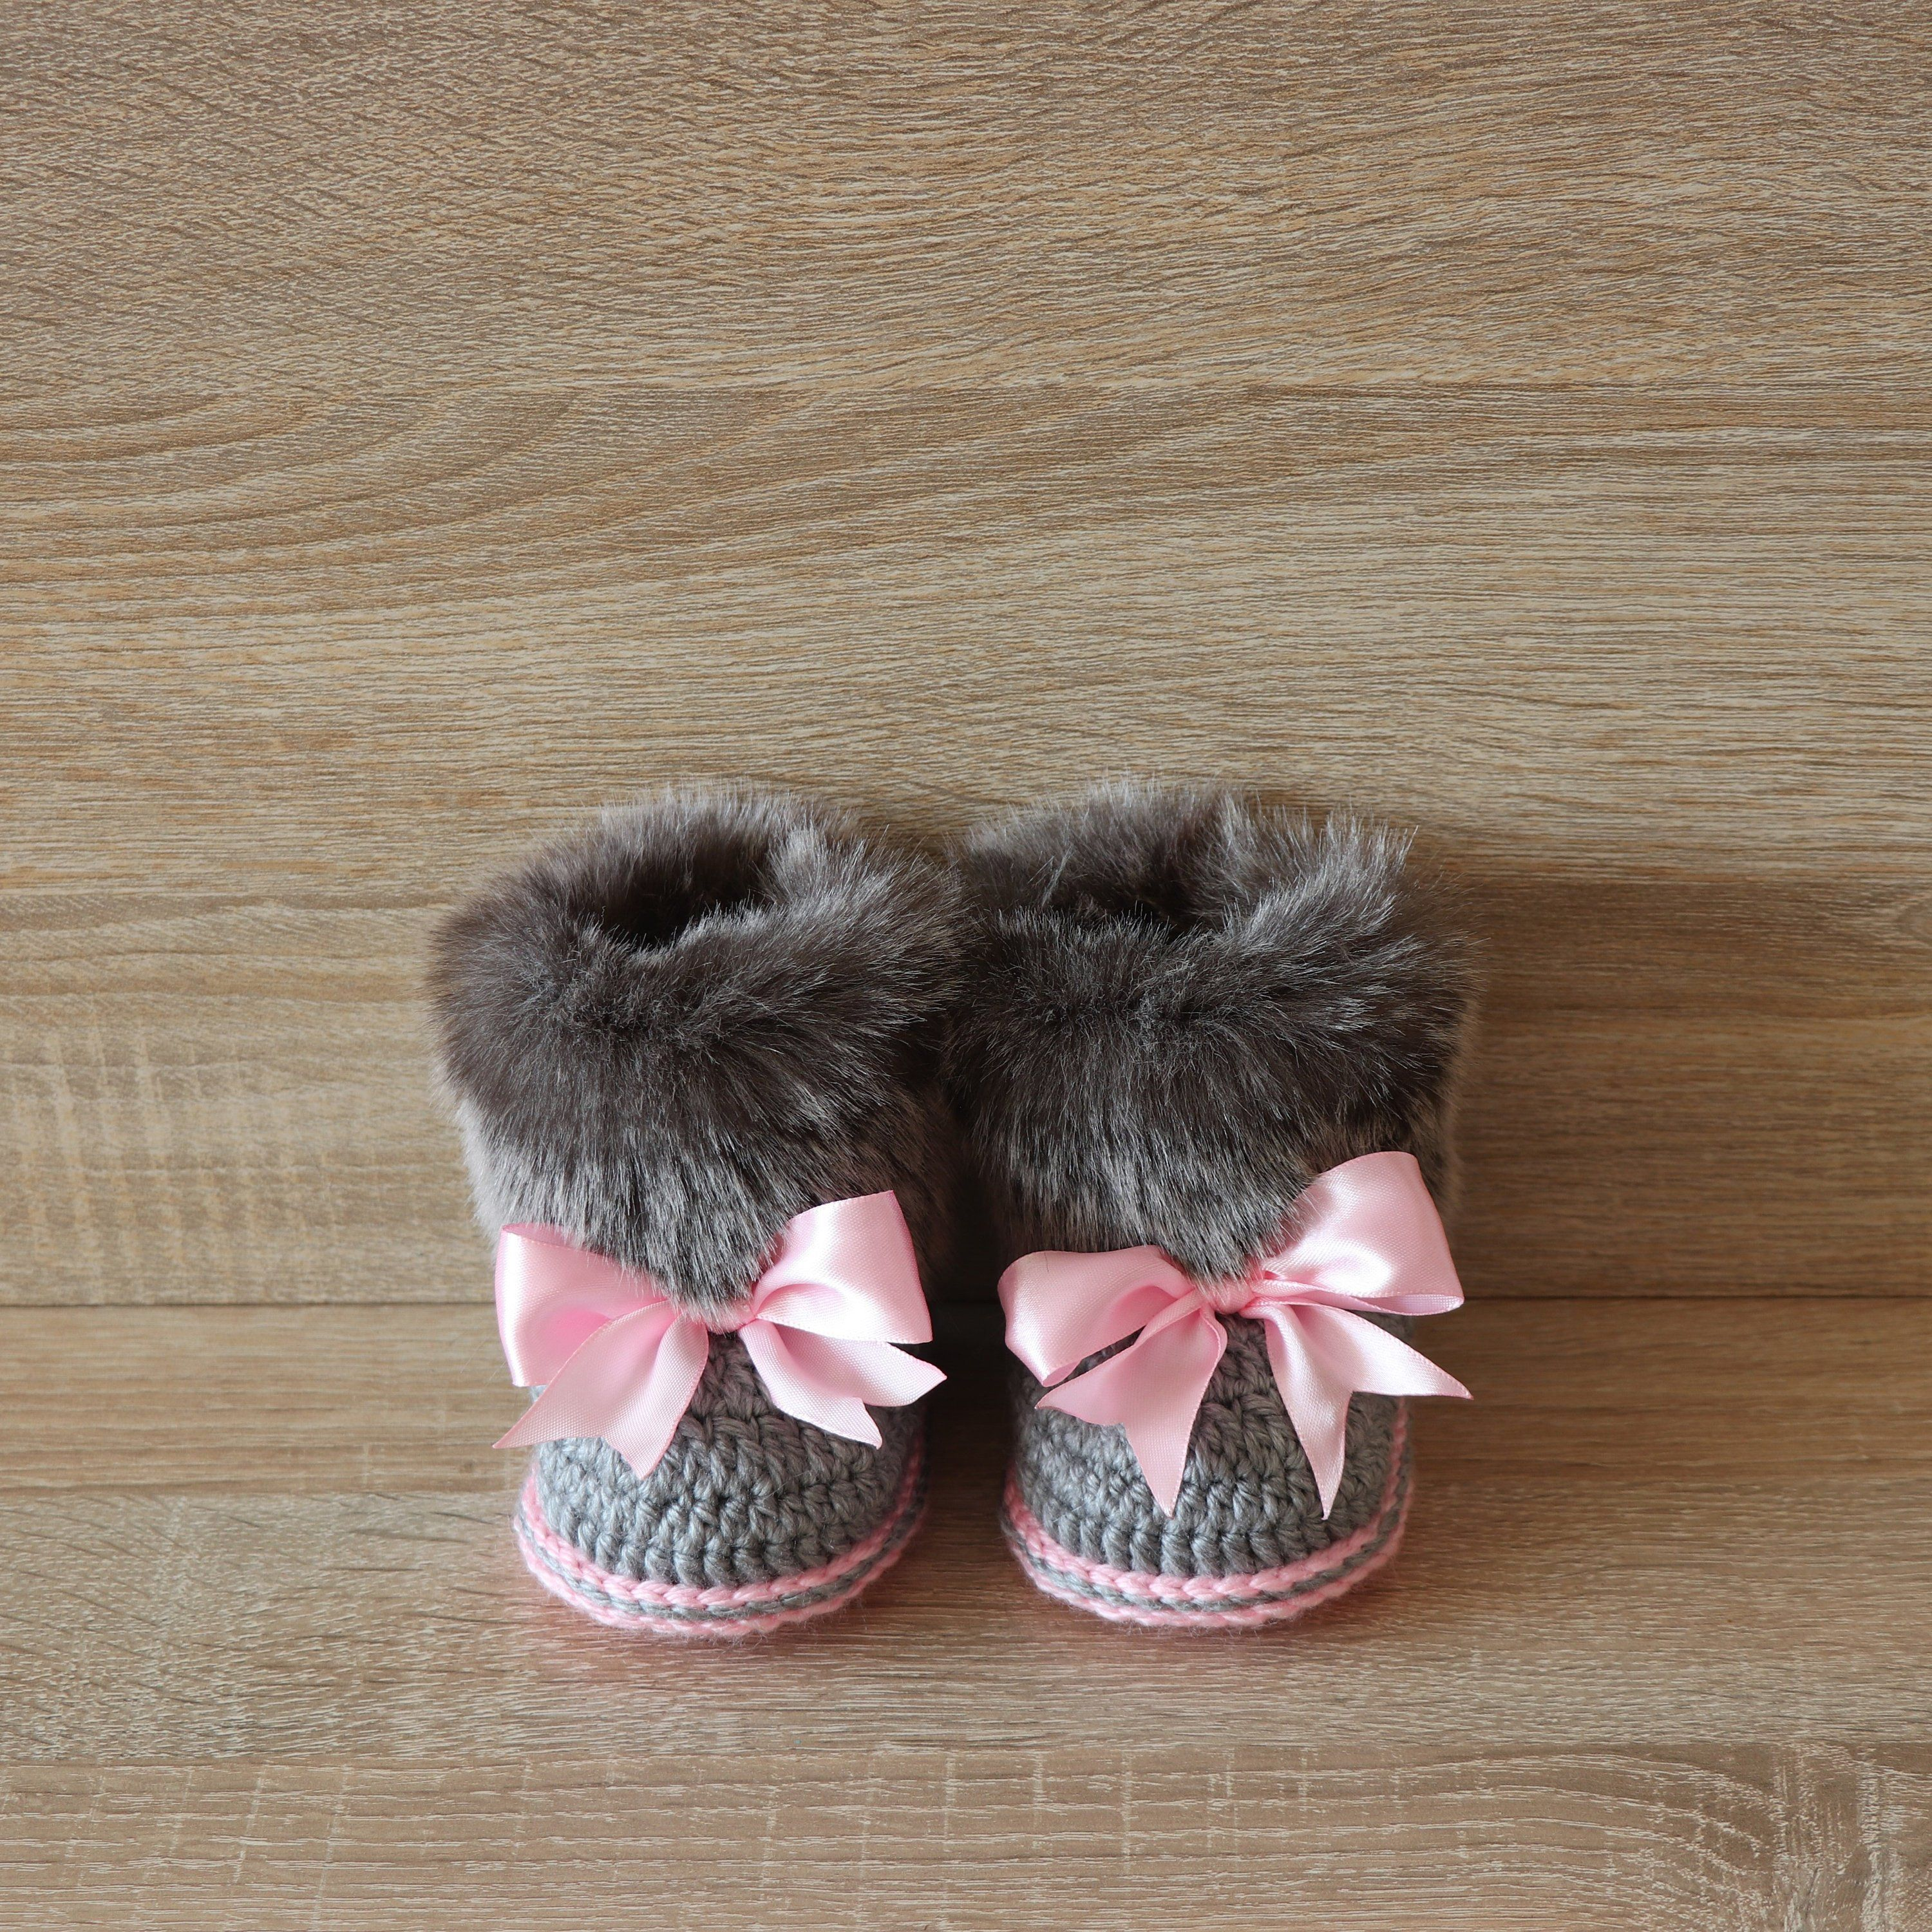 Pin on Baby booties